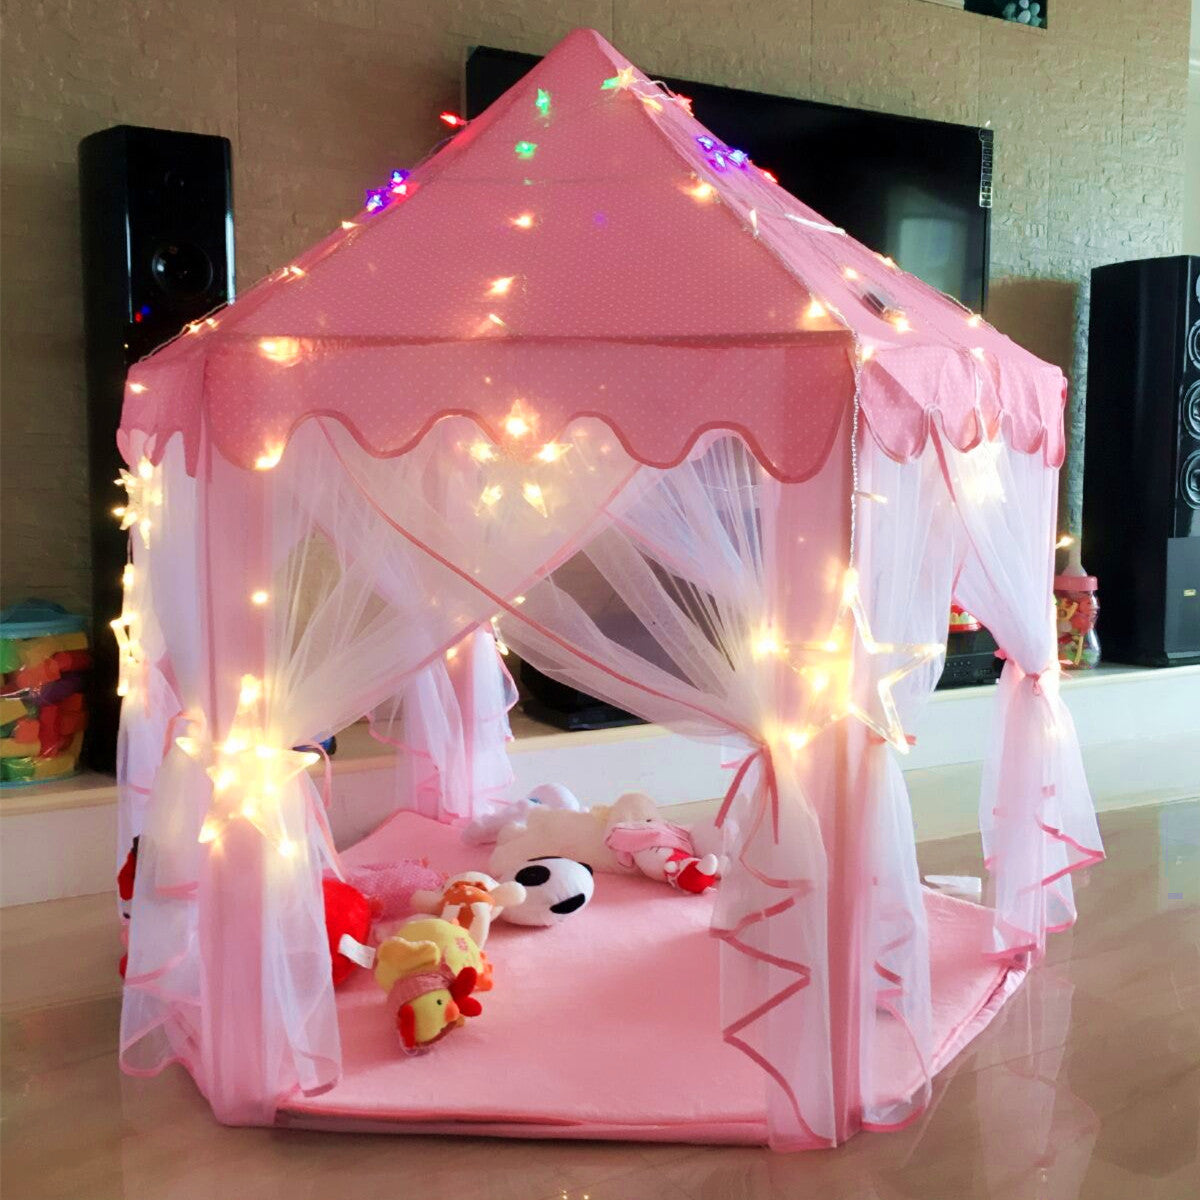 Girls Princess Castle Play Tent Large Playhouse Indoor Outdoor for KidsBalls Not Included ... & Girls Princess Castle Play Tent Large Playhouse Indoor Outdoor for ...